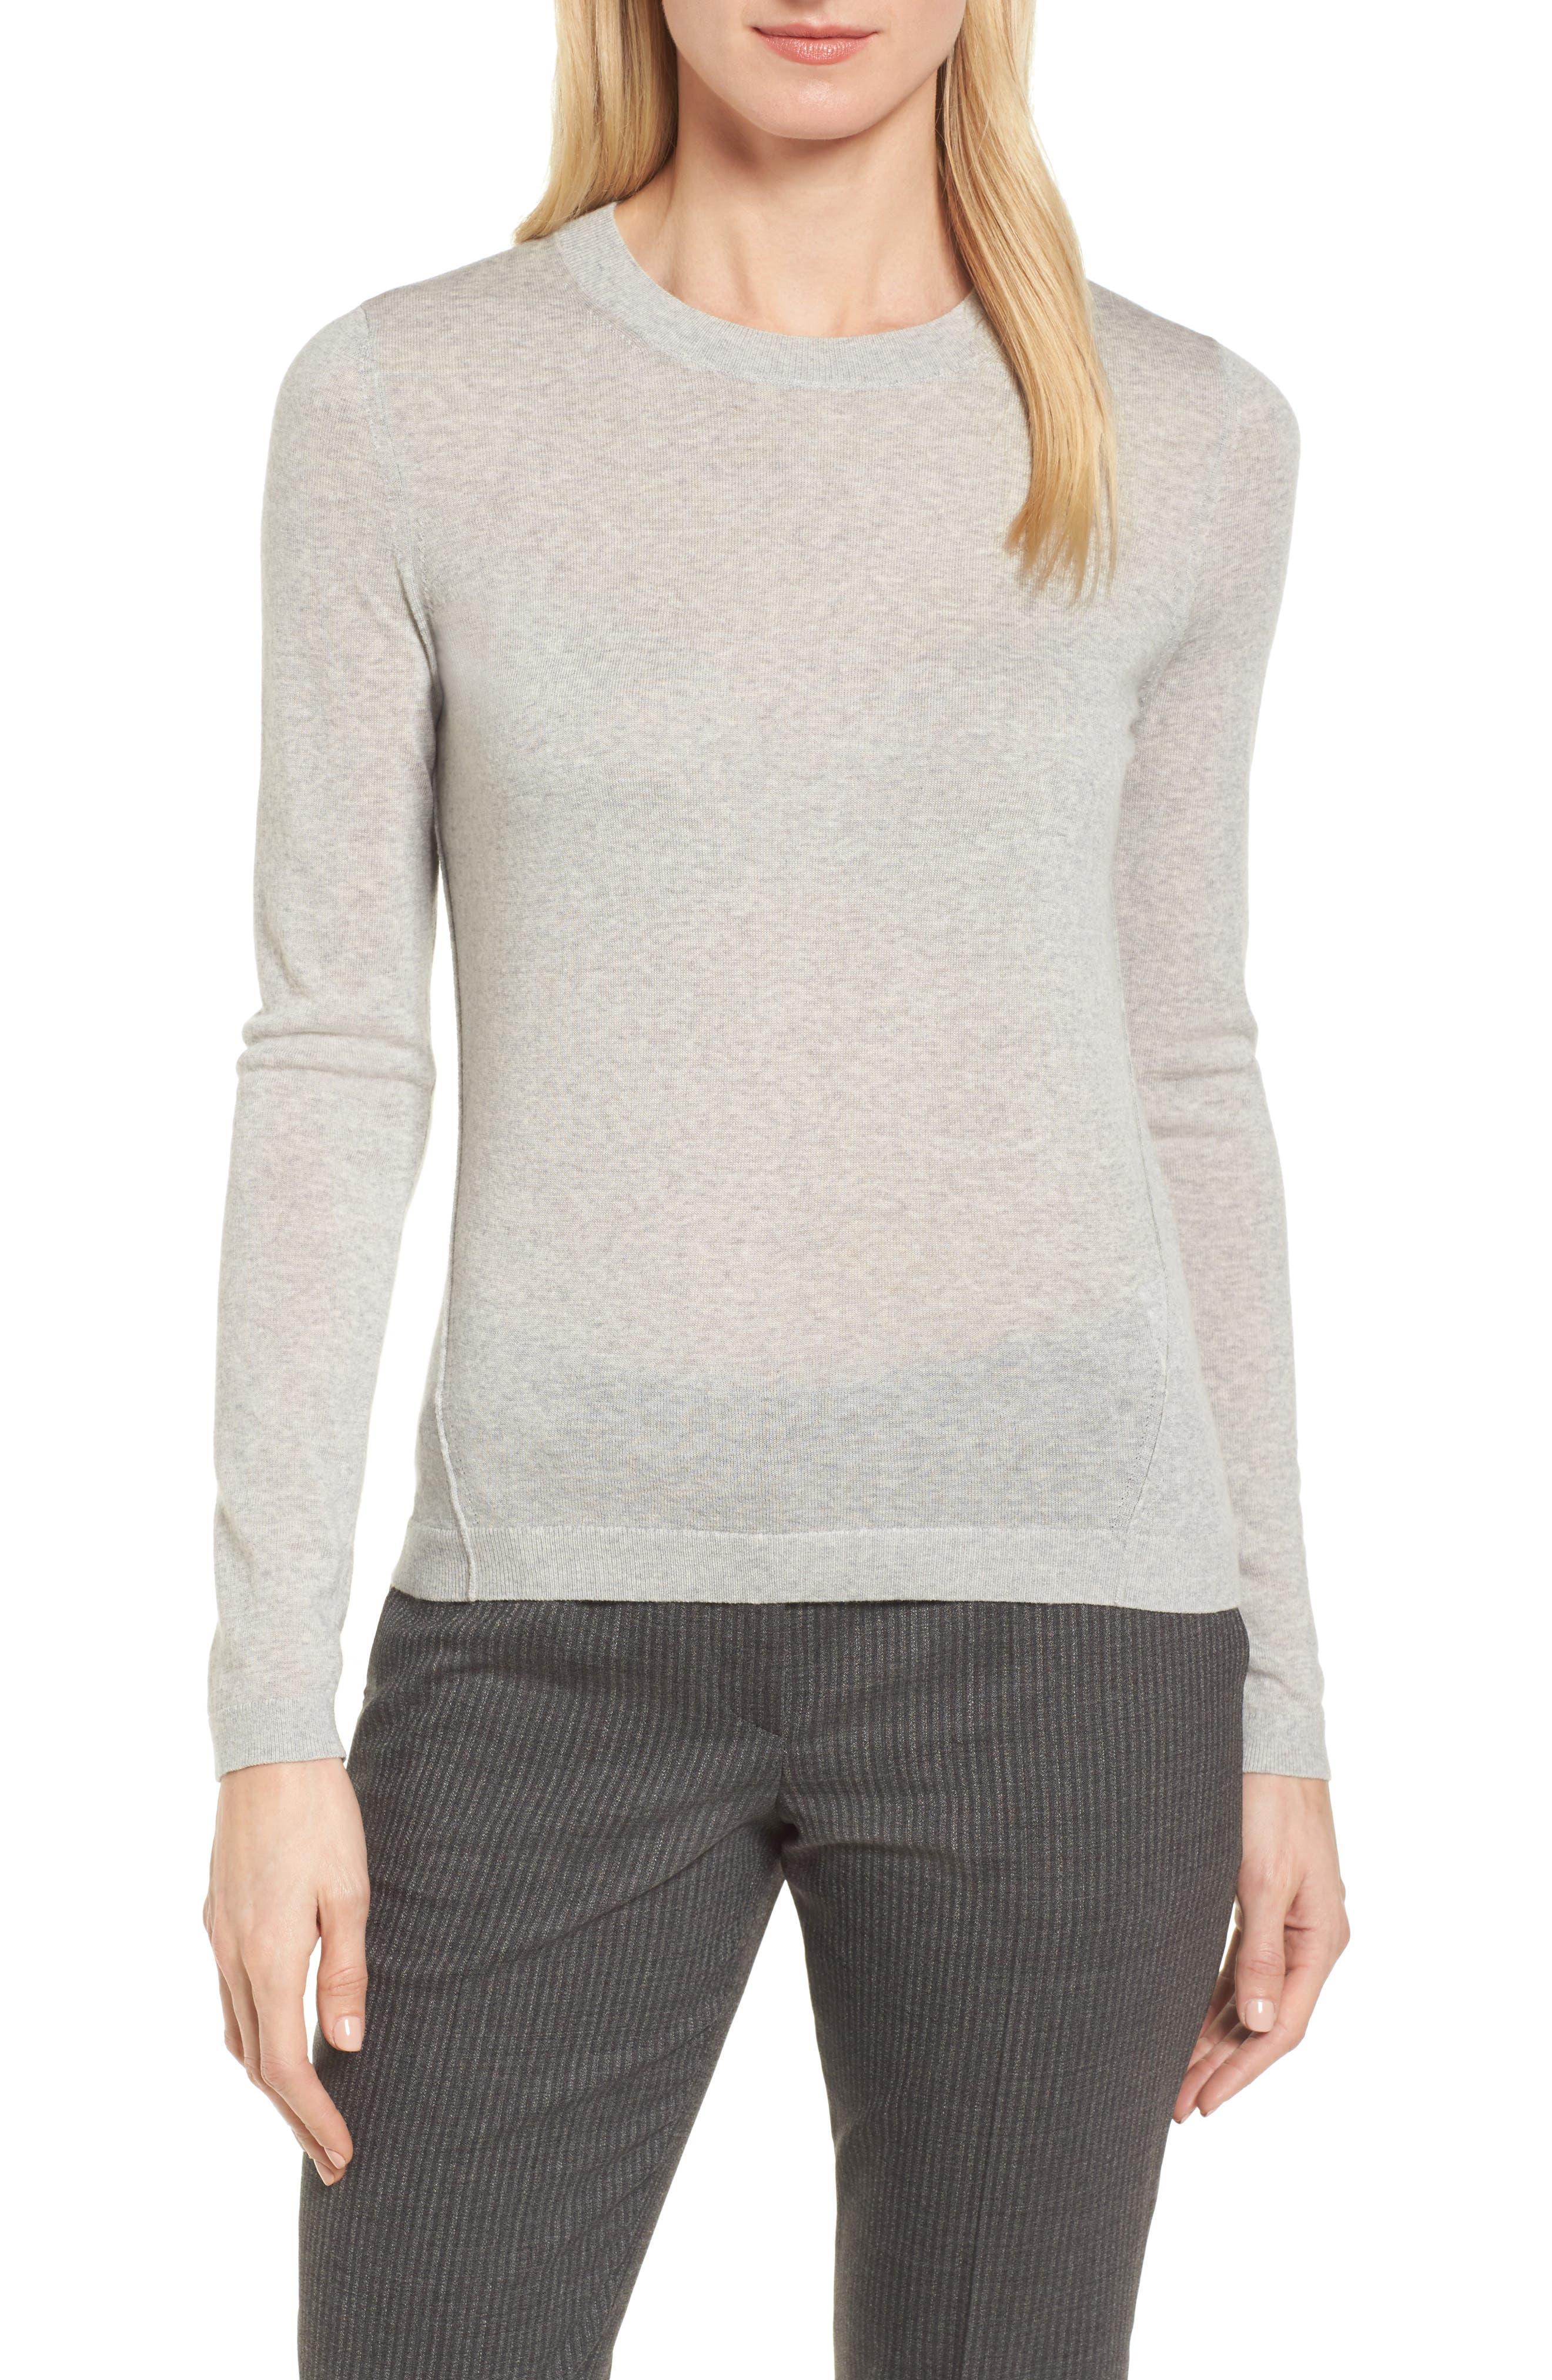 Fayme Wool Crewneck Sweater,                             Main thumbnail 1, color,                             057